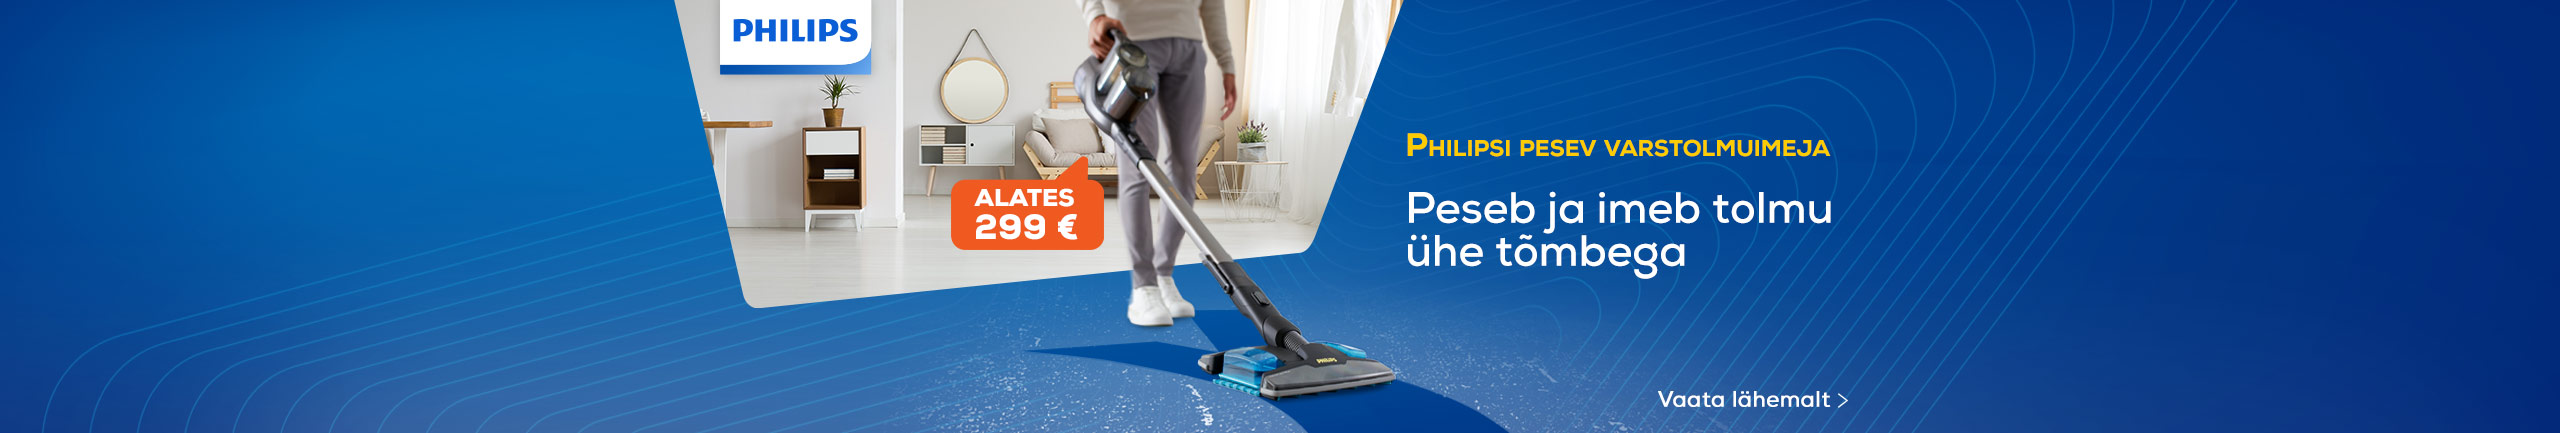 Philips cordless vacuum cleaner with a mopping function